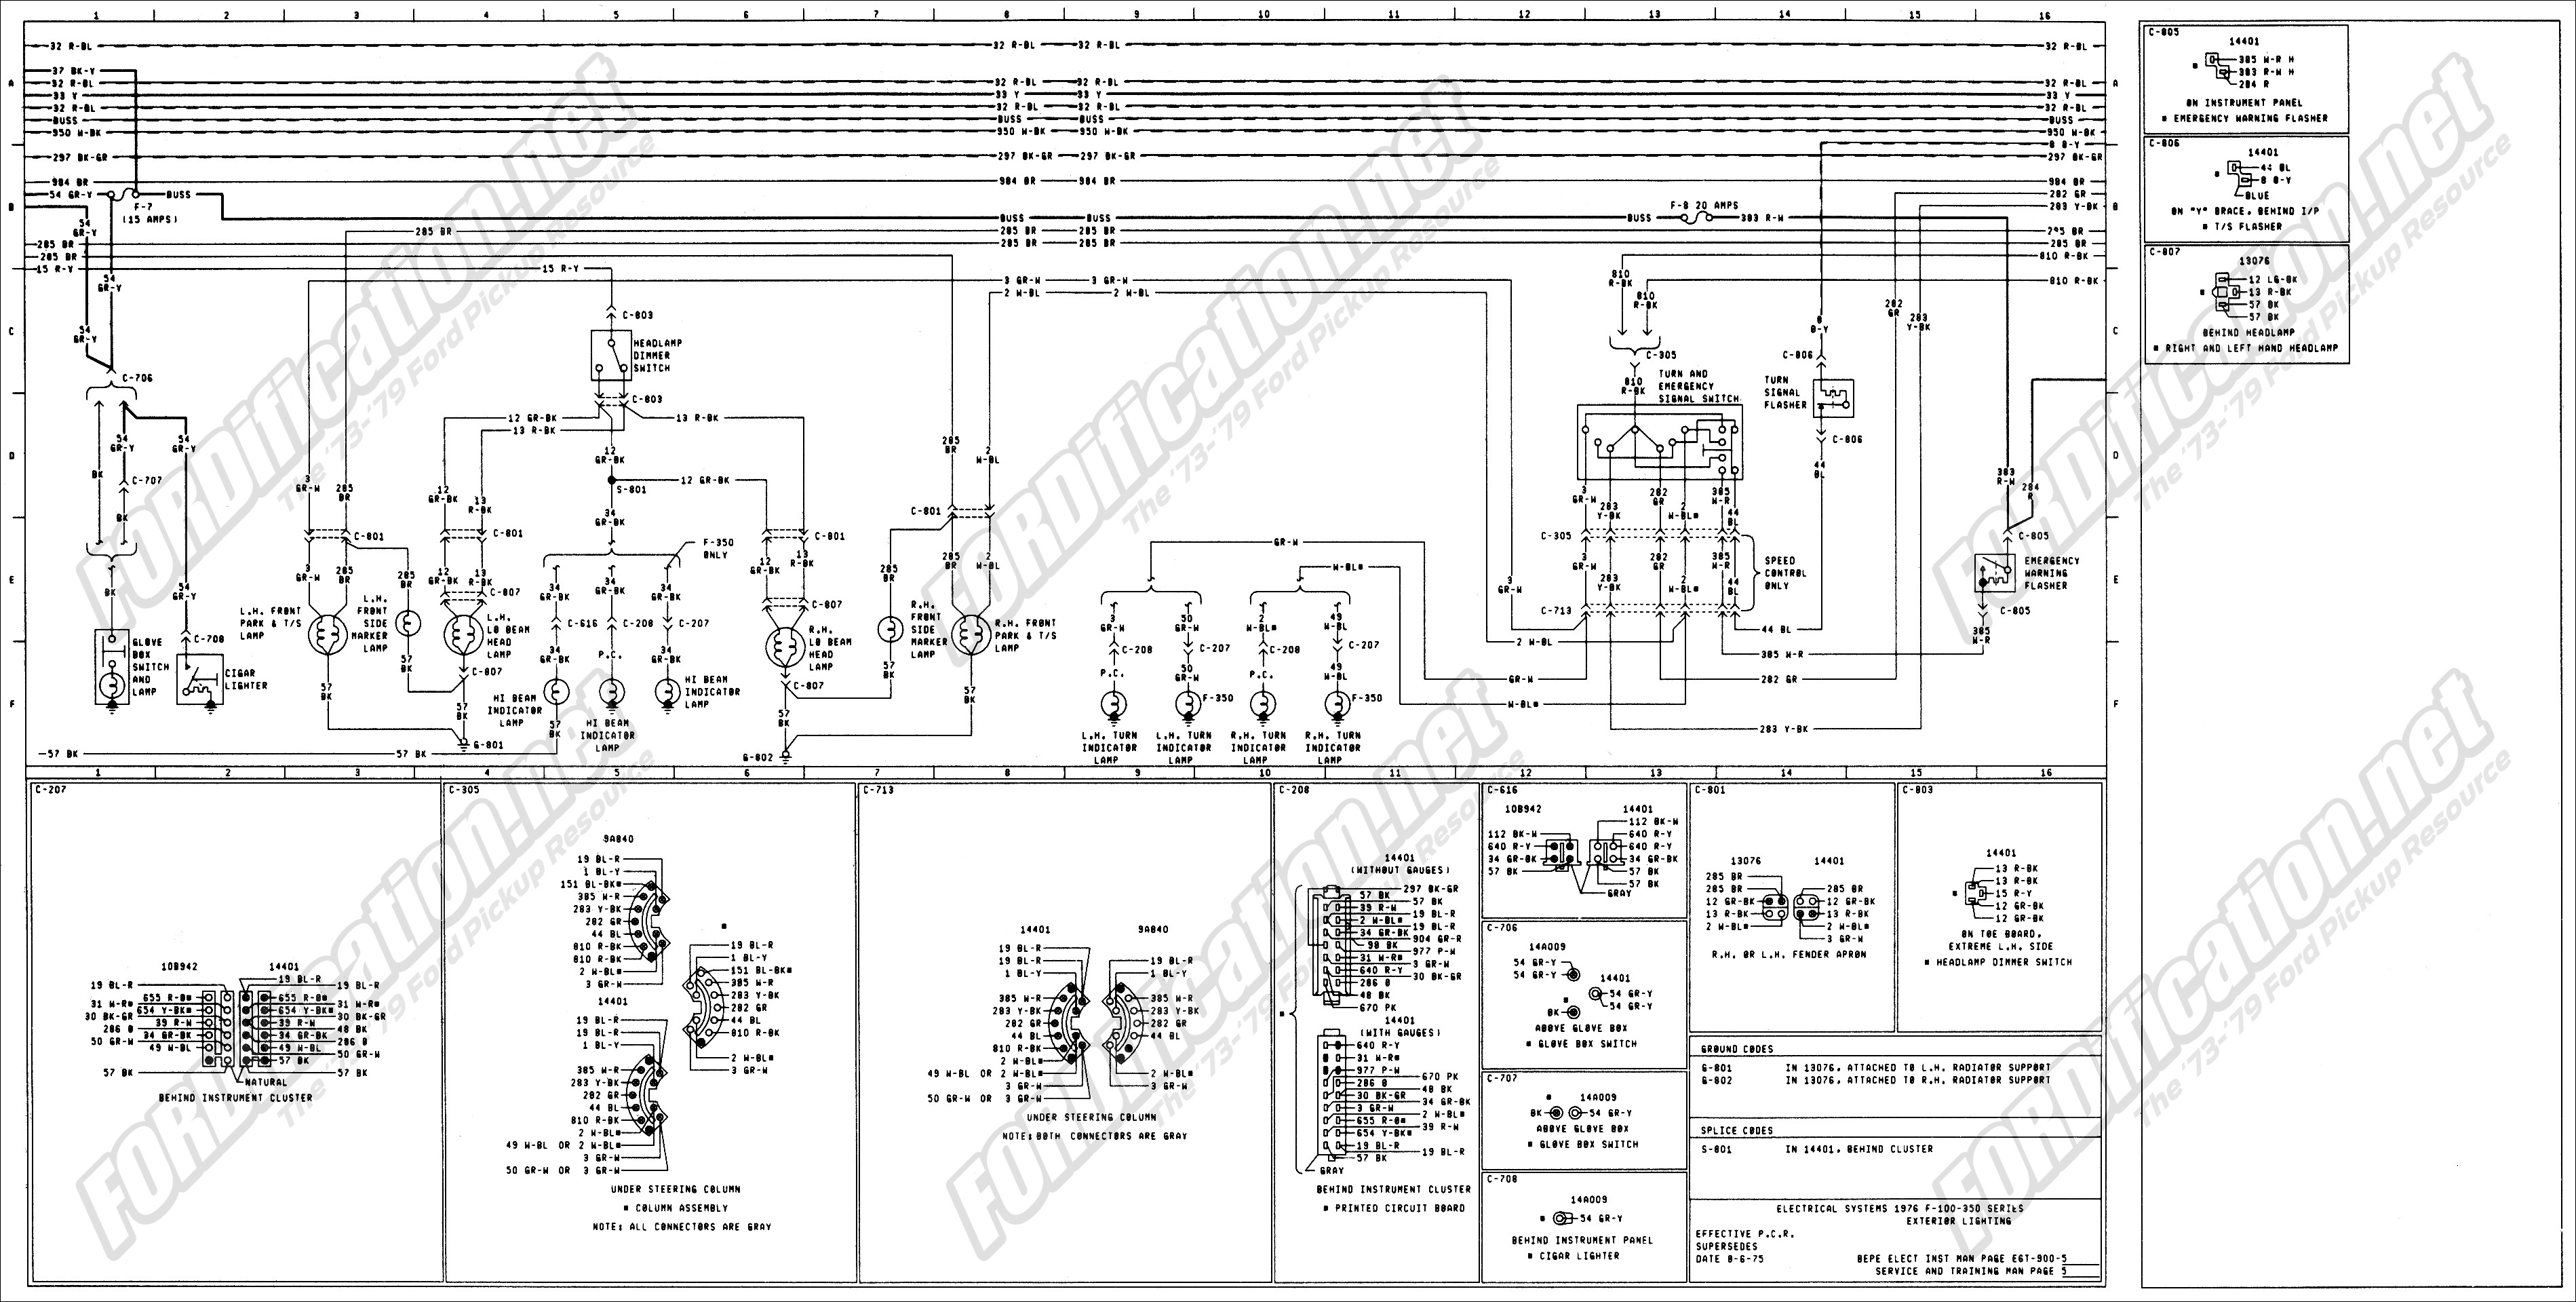 Wiring Diagram for Truck to Trailer 77 ford F250 Wiring Diagram Wiring Info • Of Wiring Diagram for Truck to Trailer